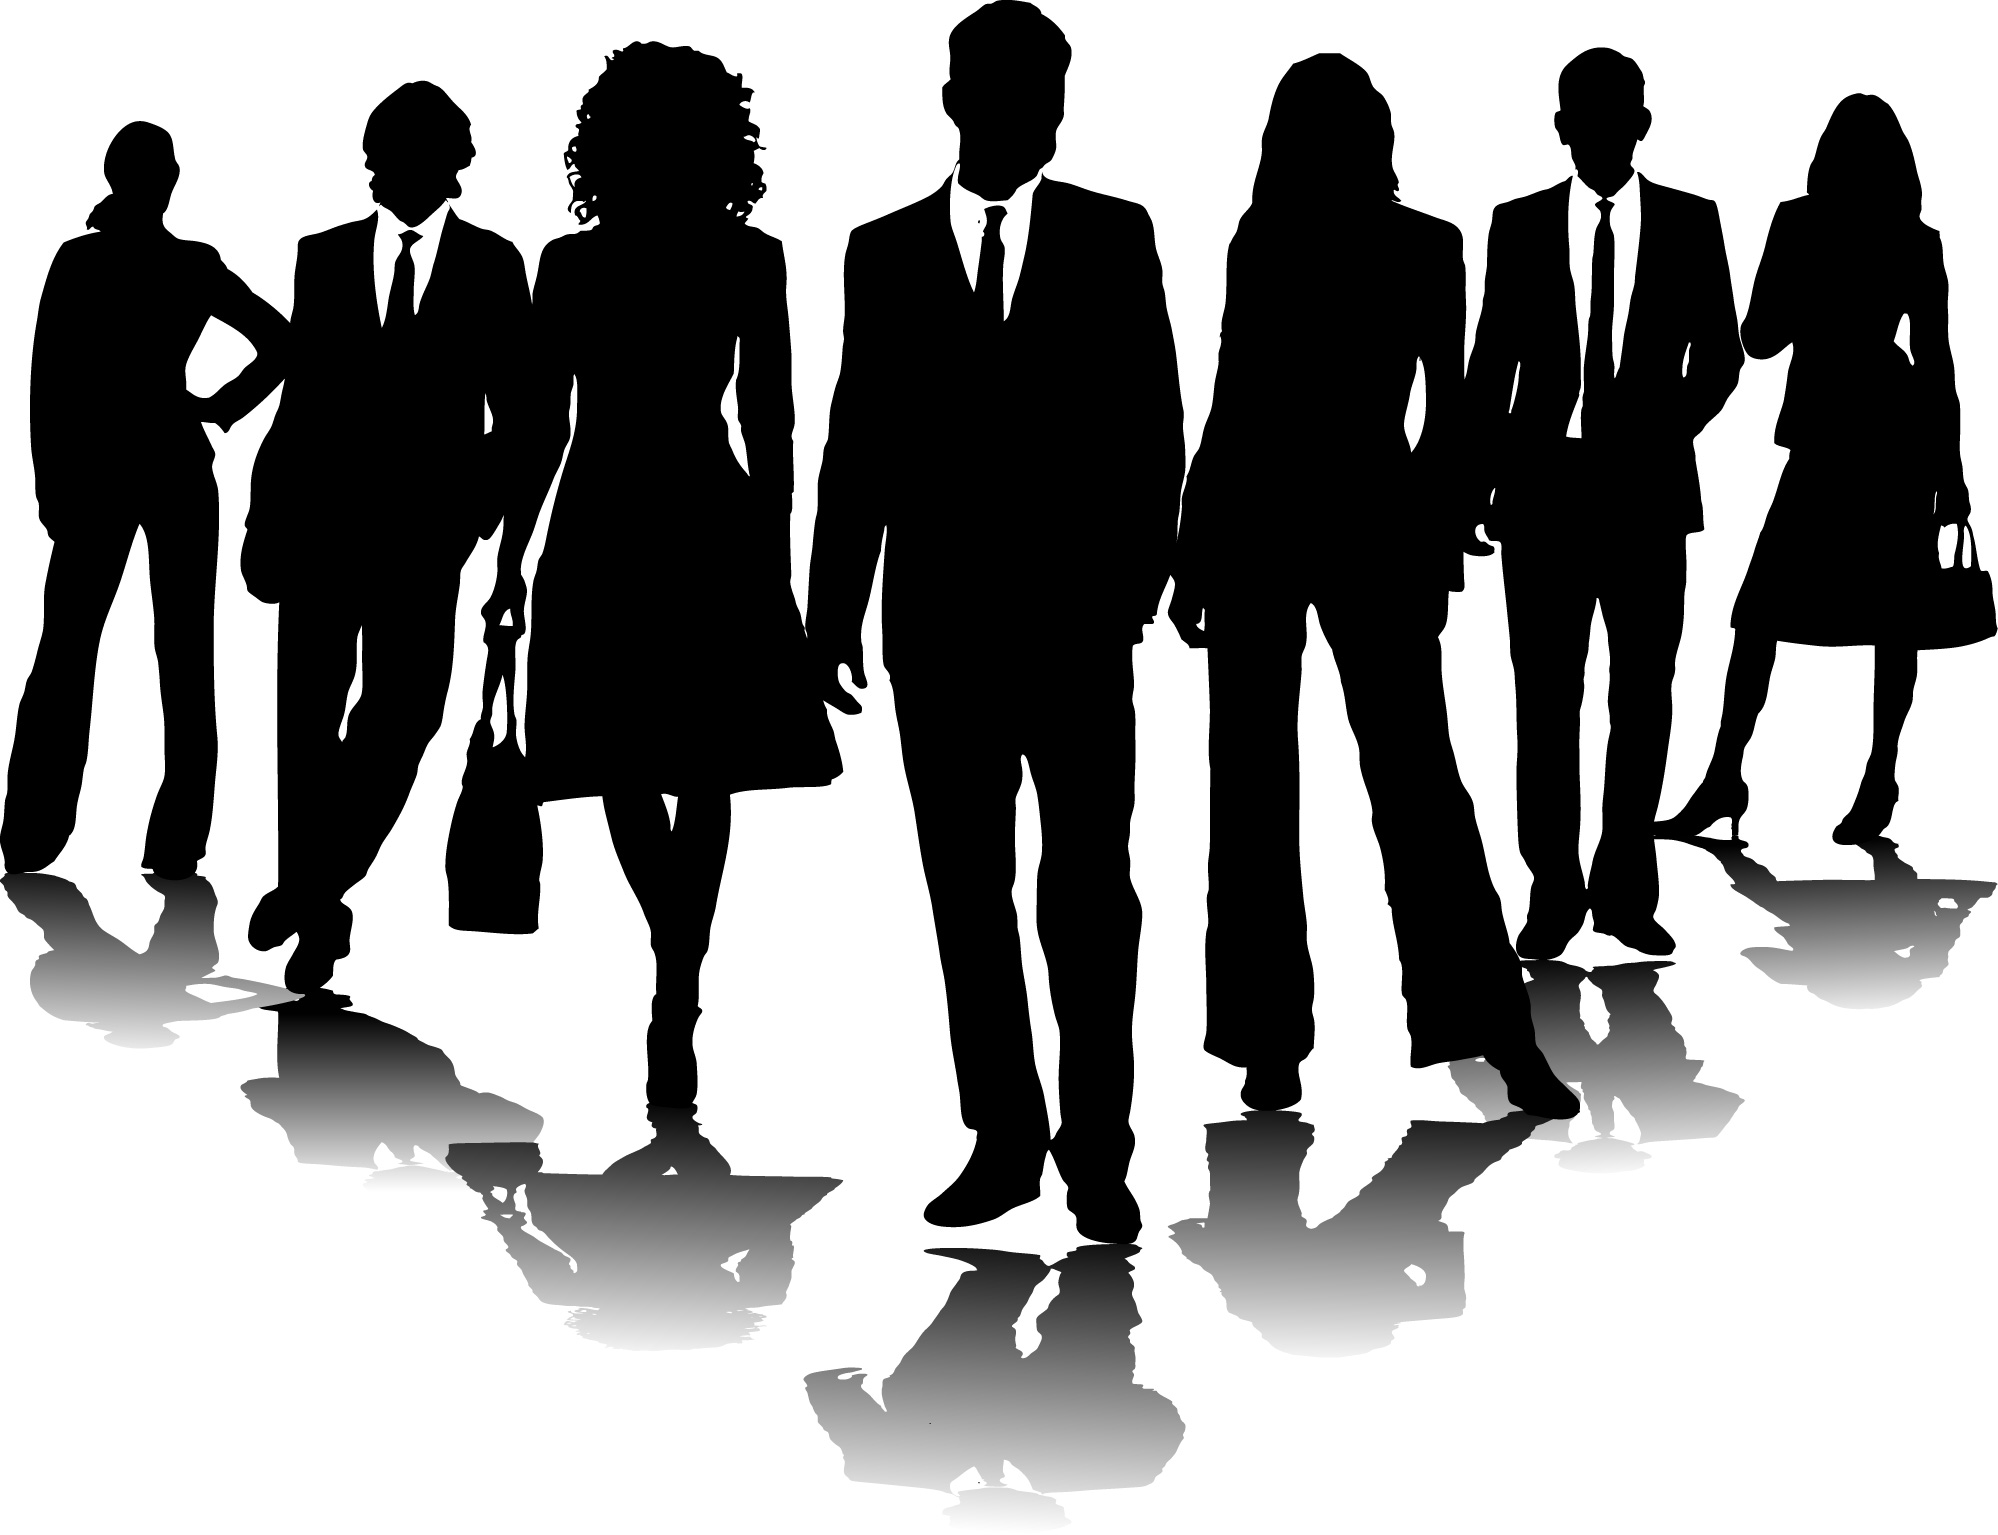 Shaow clipart business person Clipart Professional clipart Professional